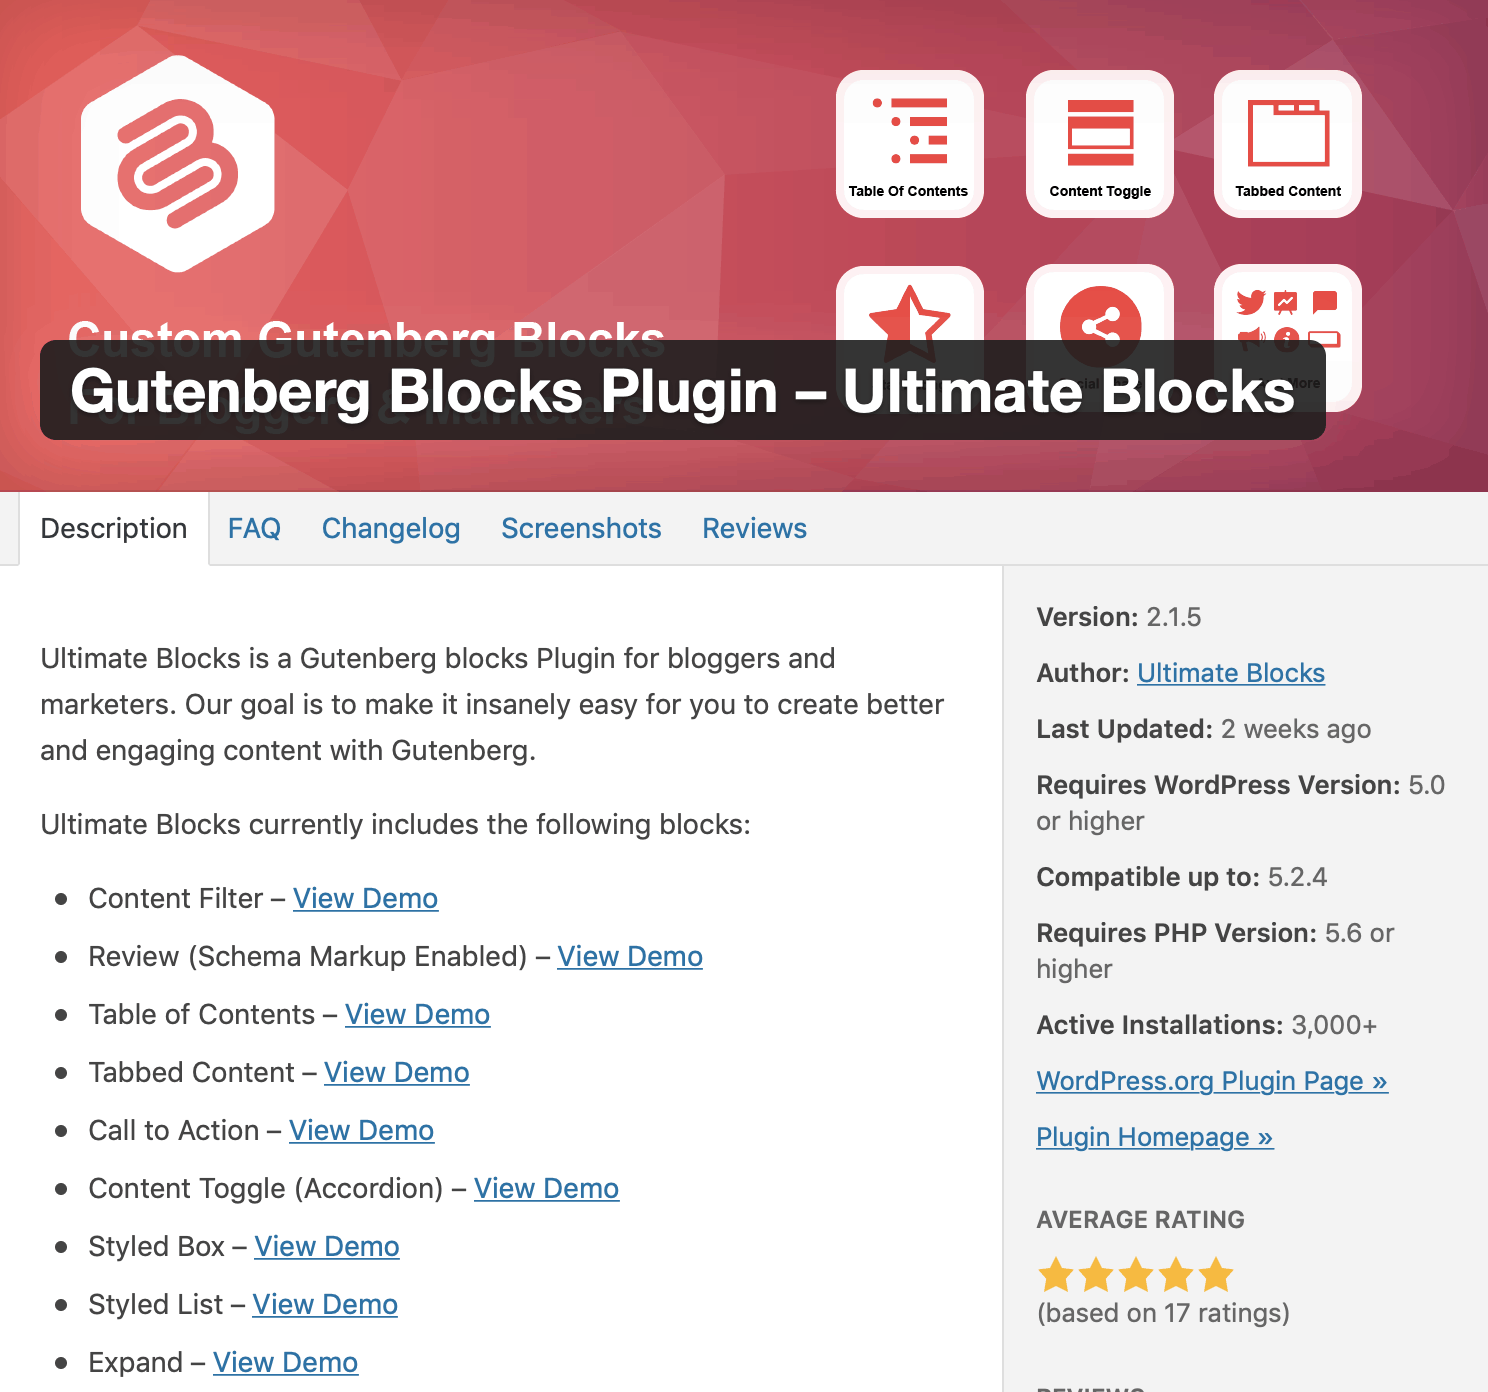 gutenberrg blocks plugin ultimate blocks